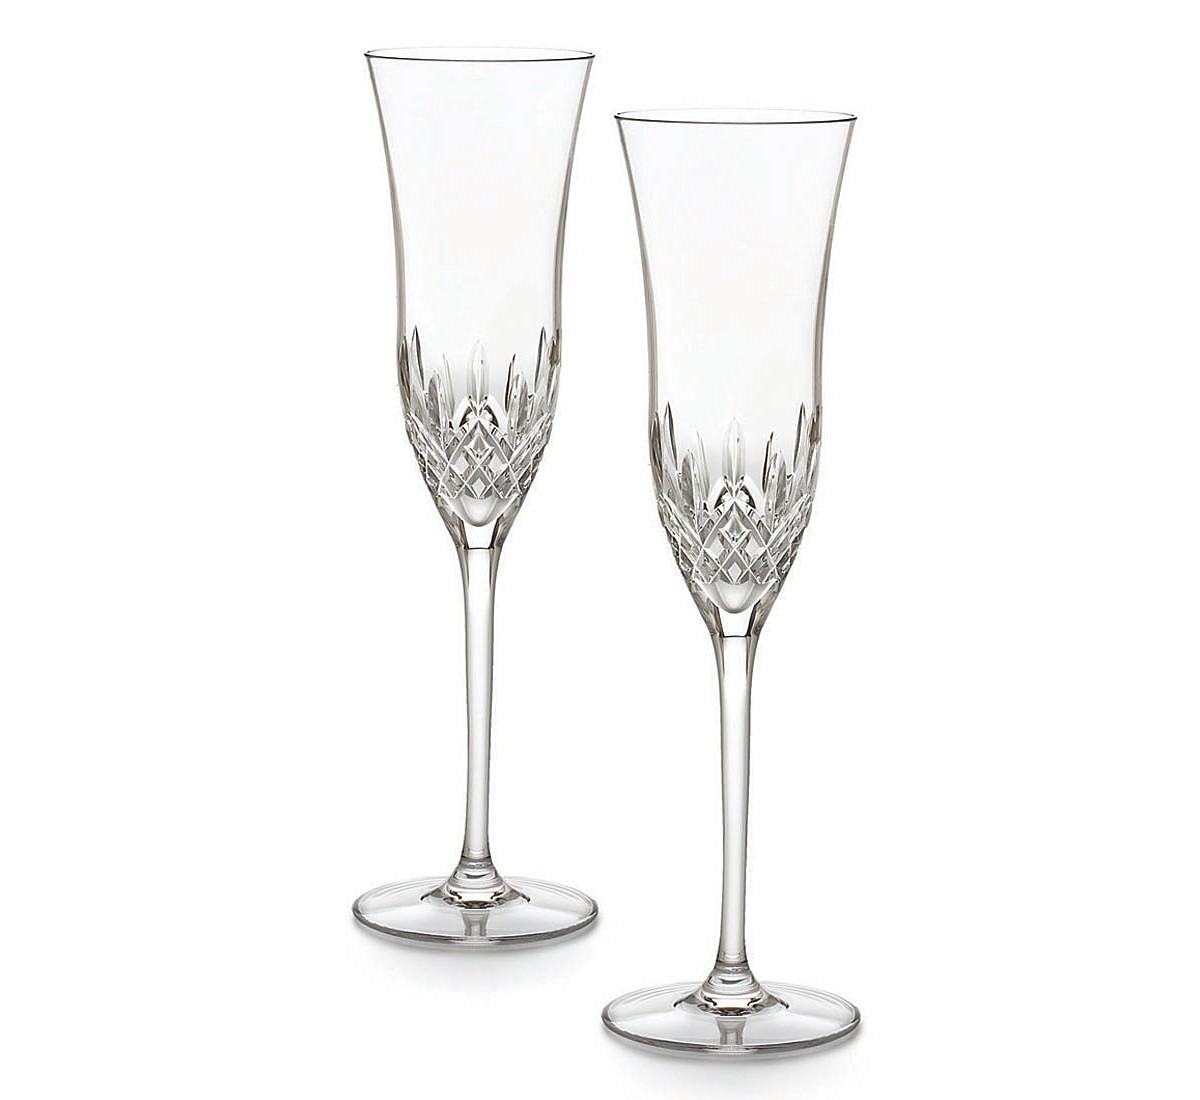 Beautiful Glass Waterford Lismore for Dining or Serveware Ideas: Engaging Waterford Lismore With Lismore Goblet Design Glass Waterford Lismore